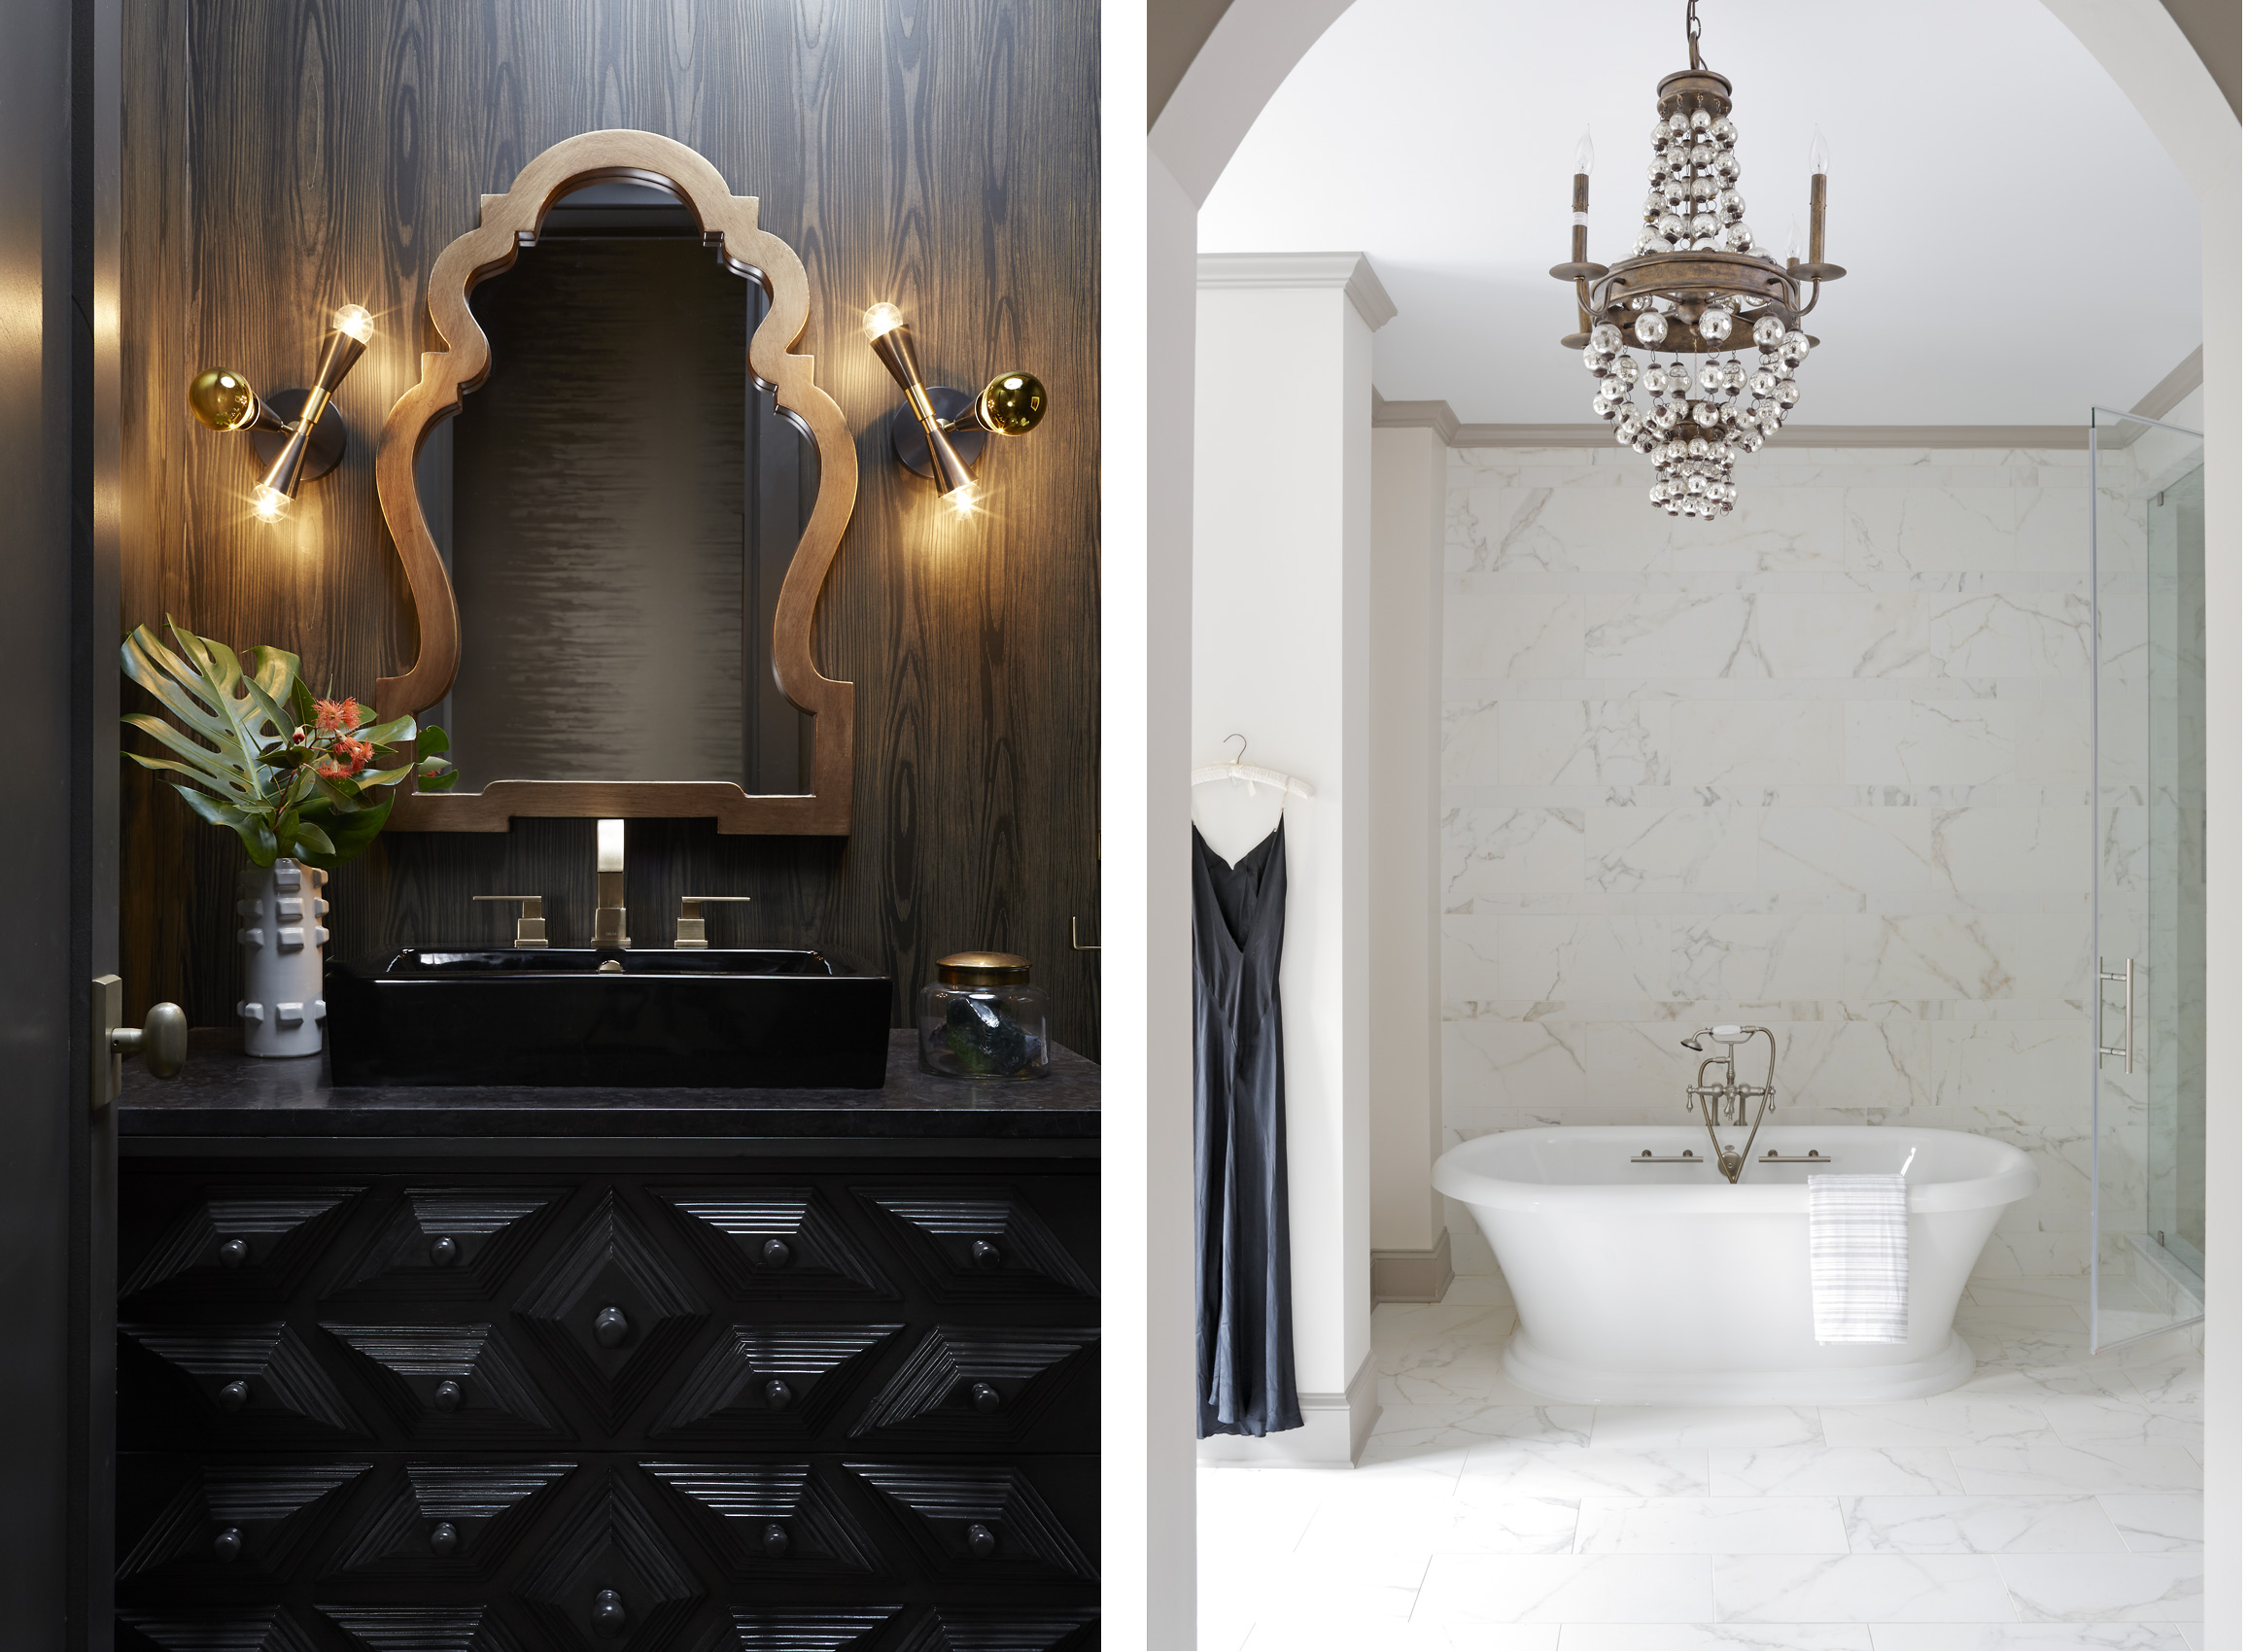 Kristin Kong Interiors designed bathrooms, Mali Azima photography.